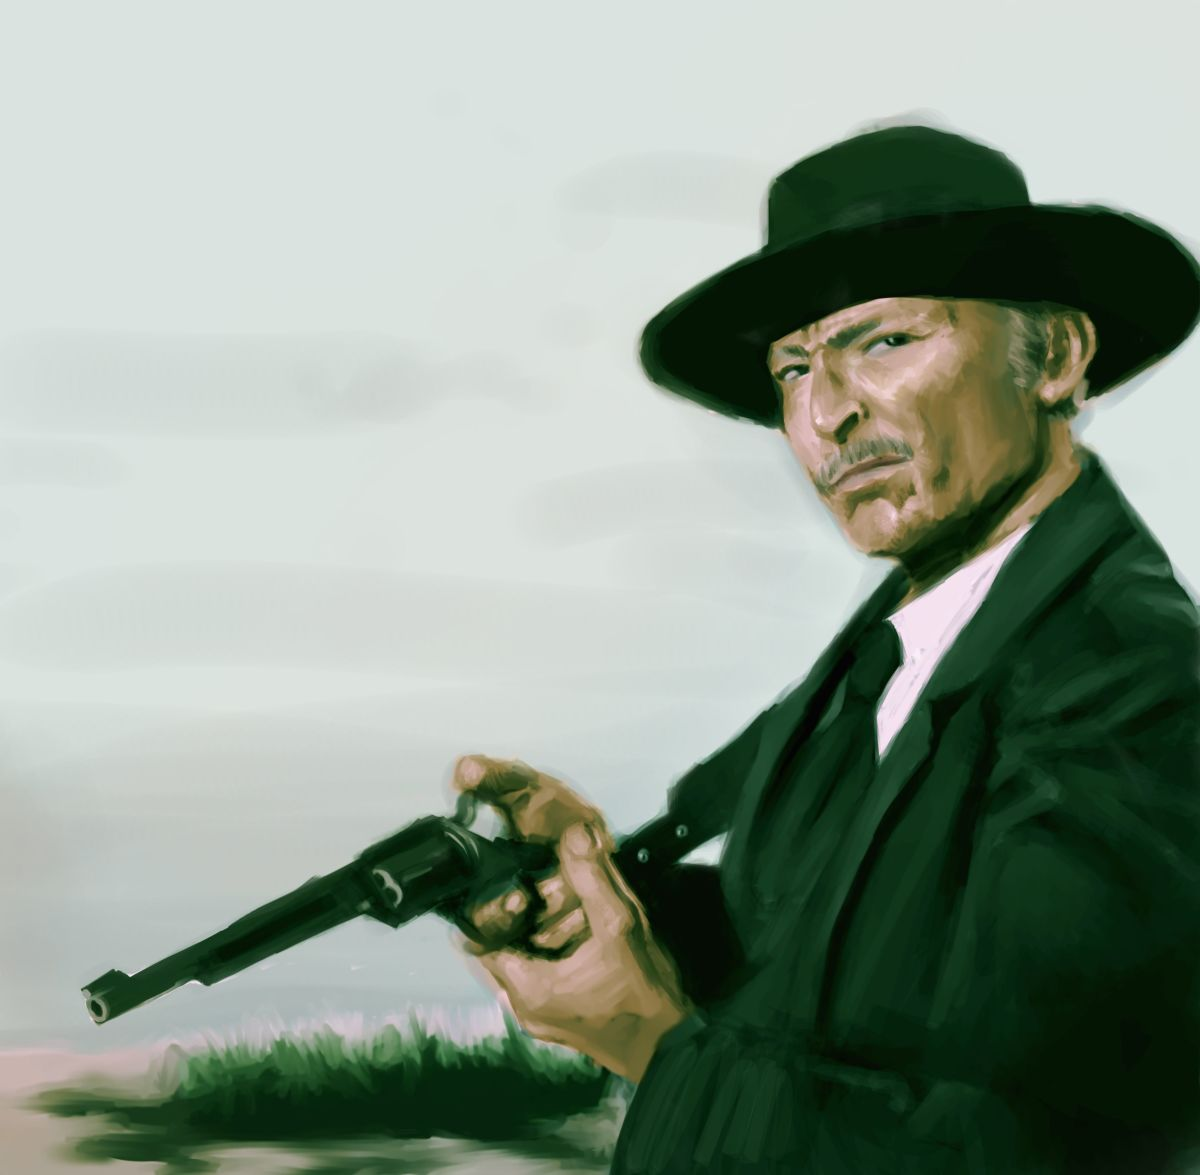 Lee Van Cleef plays Sabata